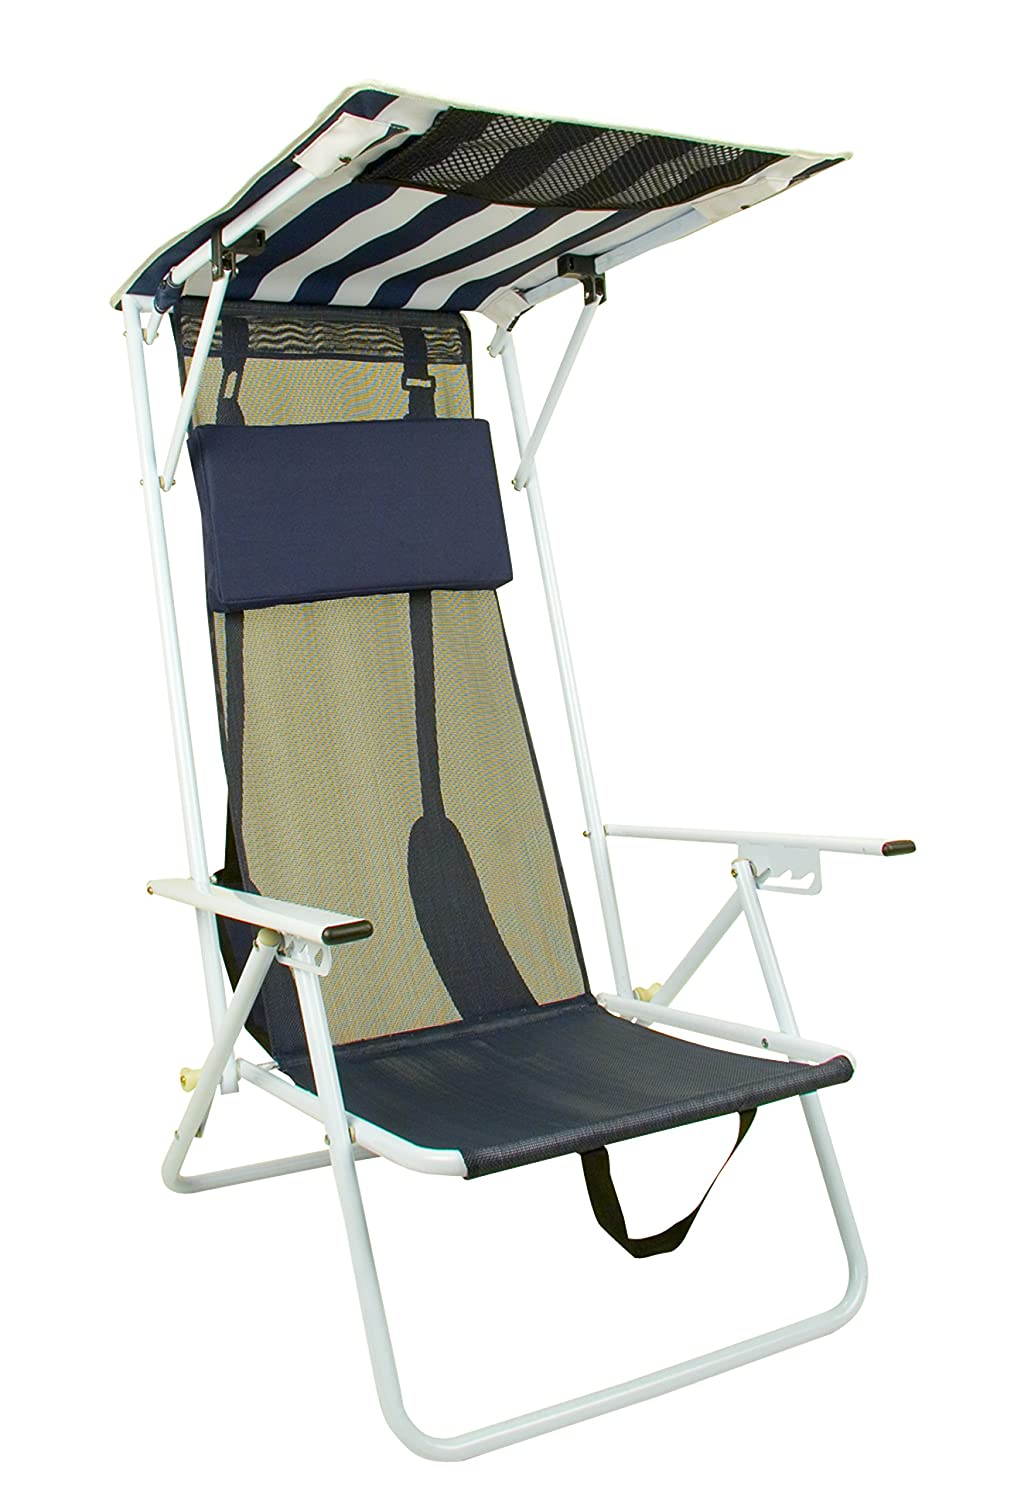 Amazon.com  Quik Shade Folding Beach Chair - Striped Navy Blue  C&ing Furniture  Sports u0026 Outdoors  sc 1 st  Amazon.com : beach chair canopy - memphite.com